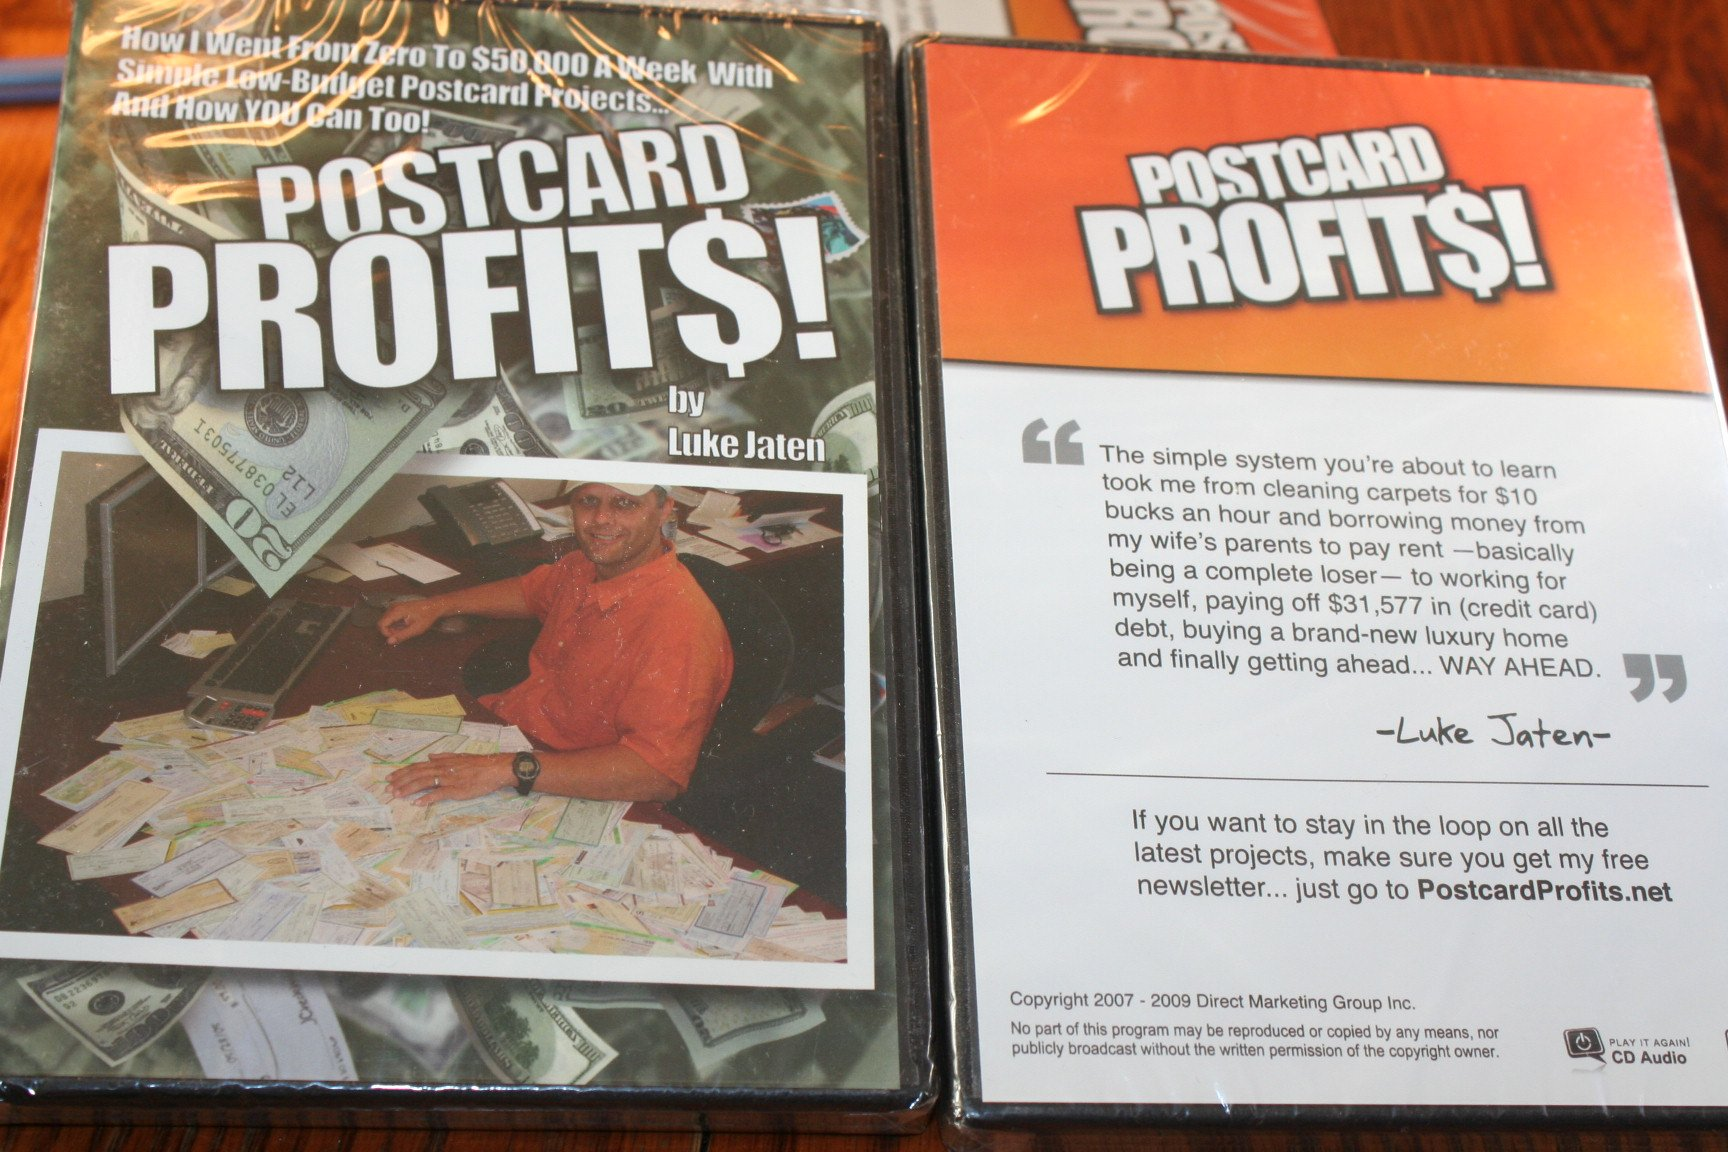 Postcard Profits Part Three: The Product (How I Went From Zero to $50,000 a Week With Simple Low-Budget Postcard Projects... And How YOU Can Too!, 3) ebook